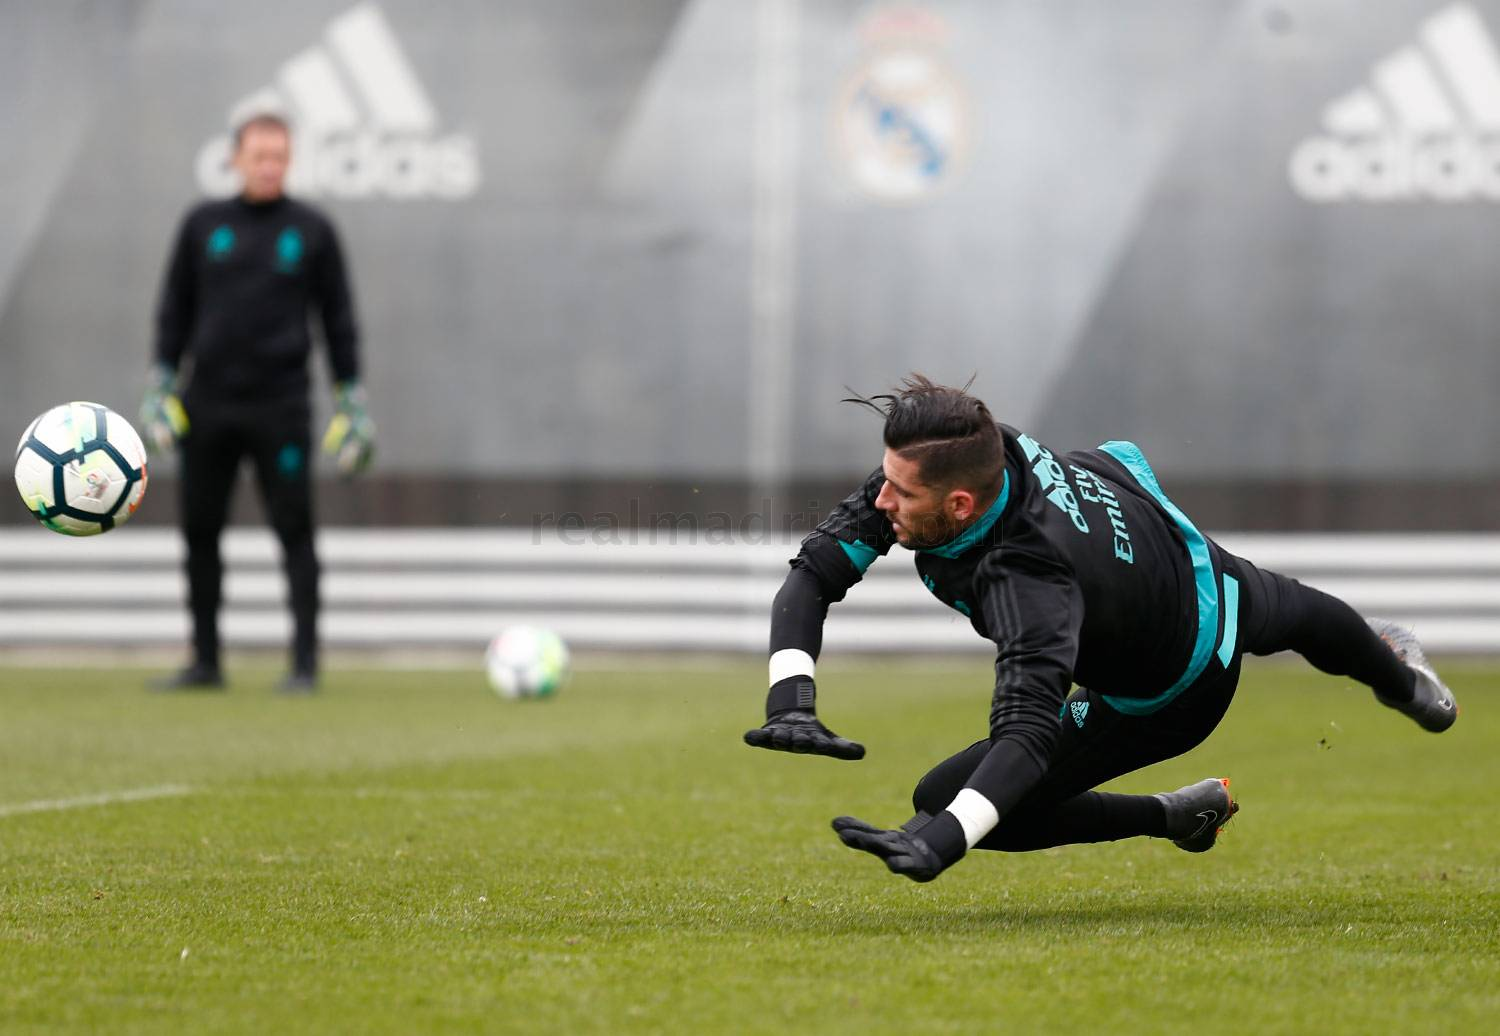 Real Madrid - Entrenamiento del Real Madrid - 23-03-2018